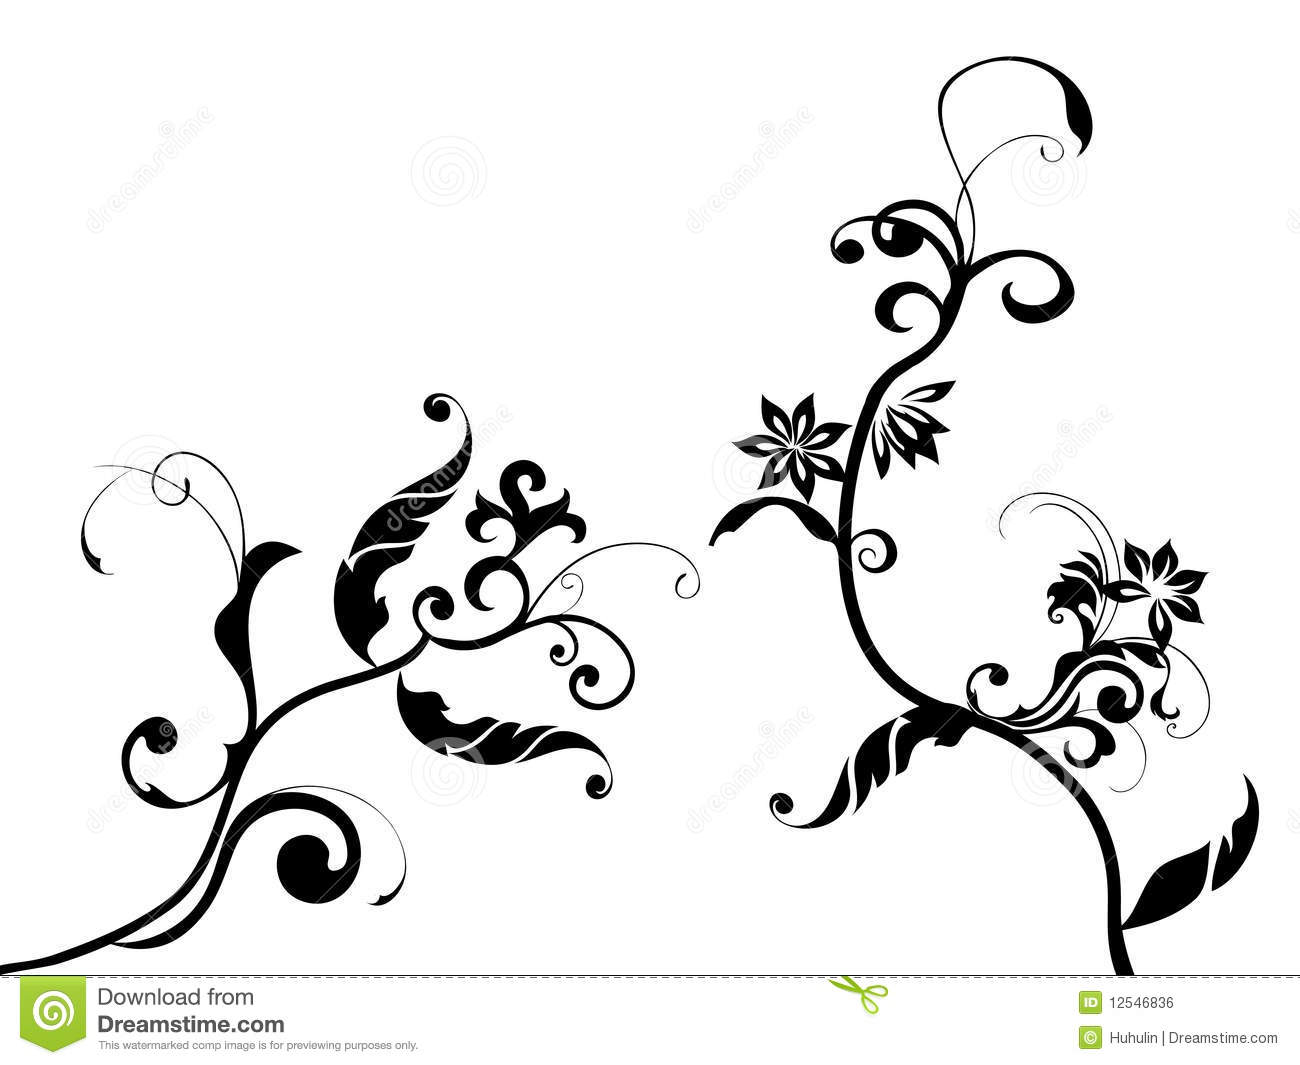 Flower pattern stock vector illustration of flourishes 12546836 flower pattern thecheapjerseys Choice Image